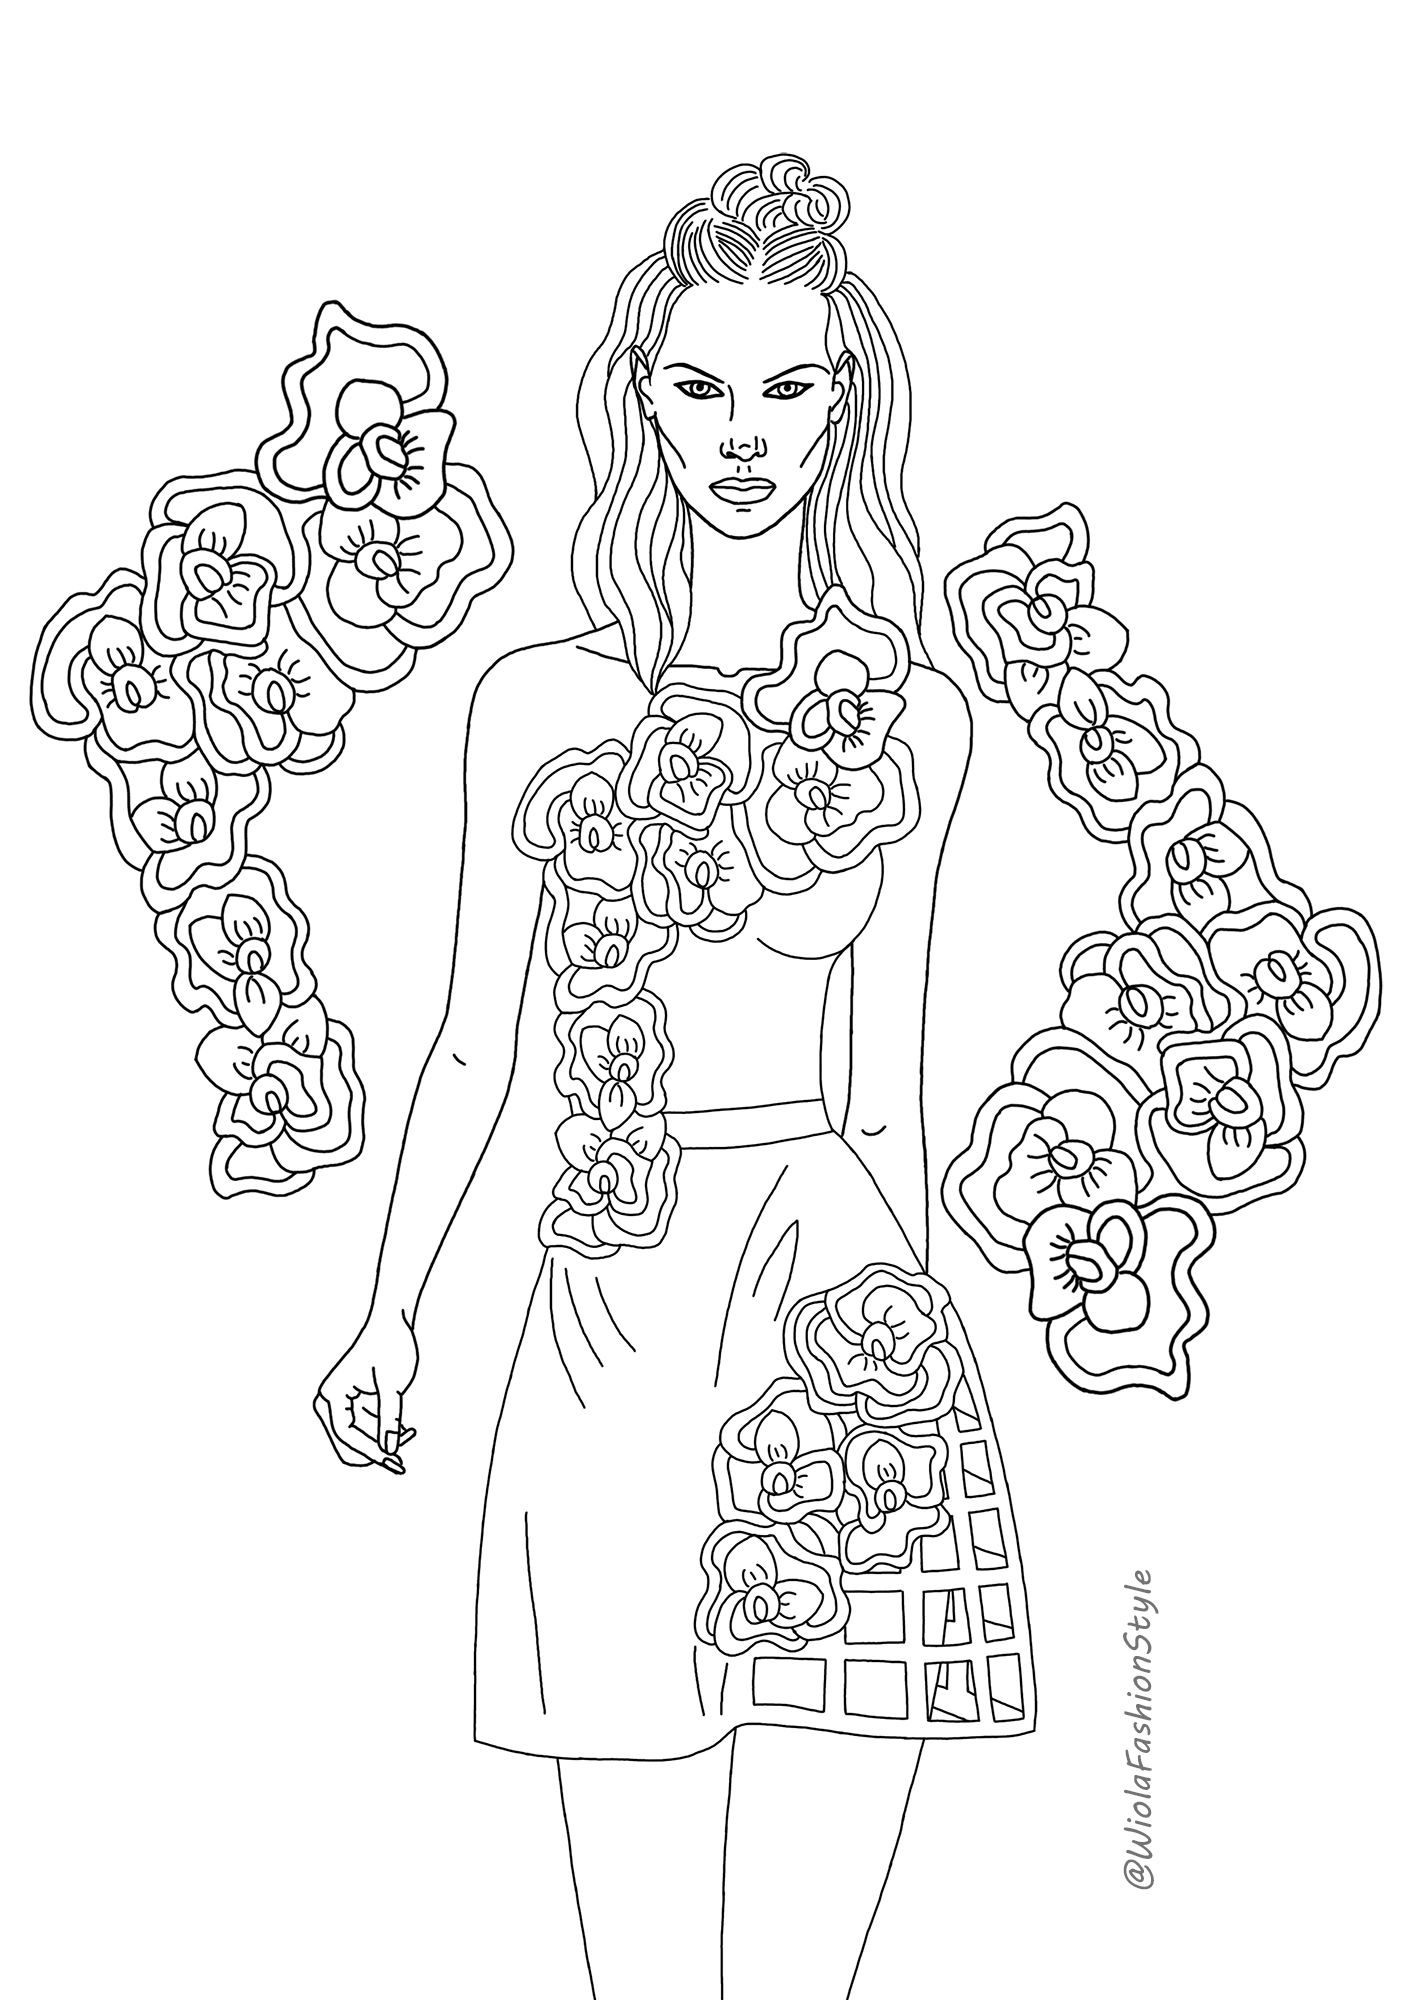 Pin By Wioletta Wiecek On My Art Work In 2020 Fashion Coloring Book Anime Art Girl Coloring Pages